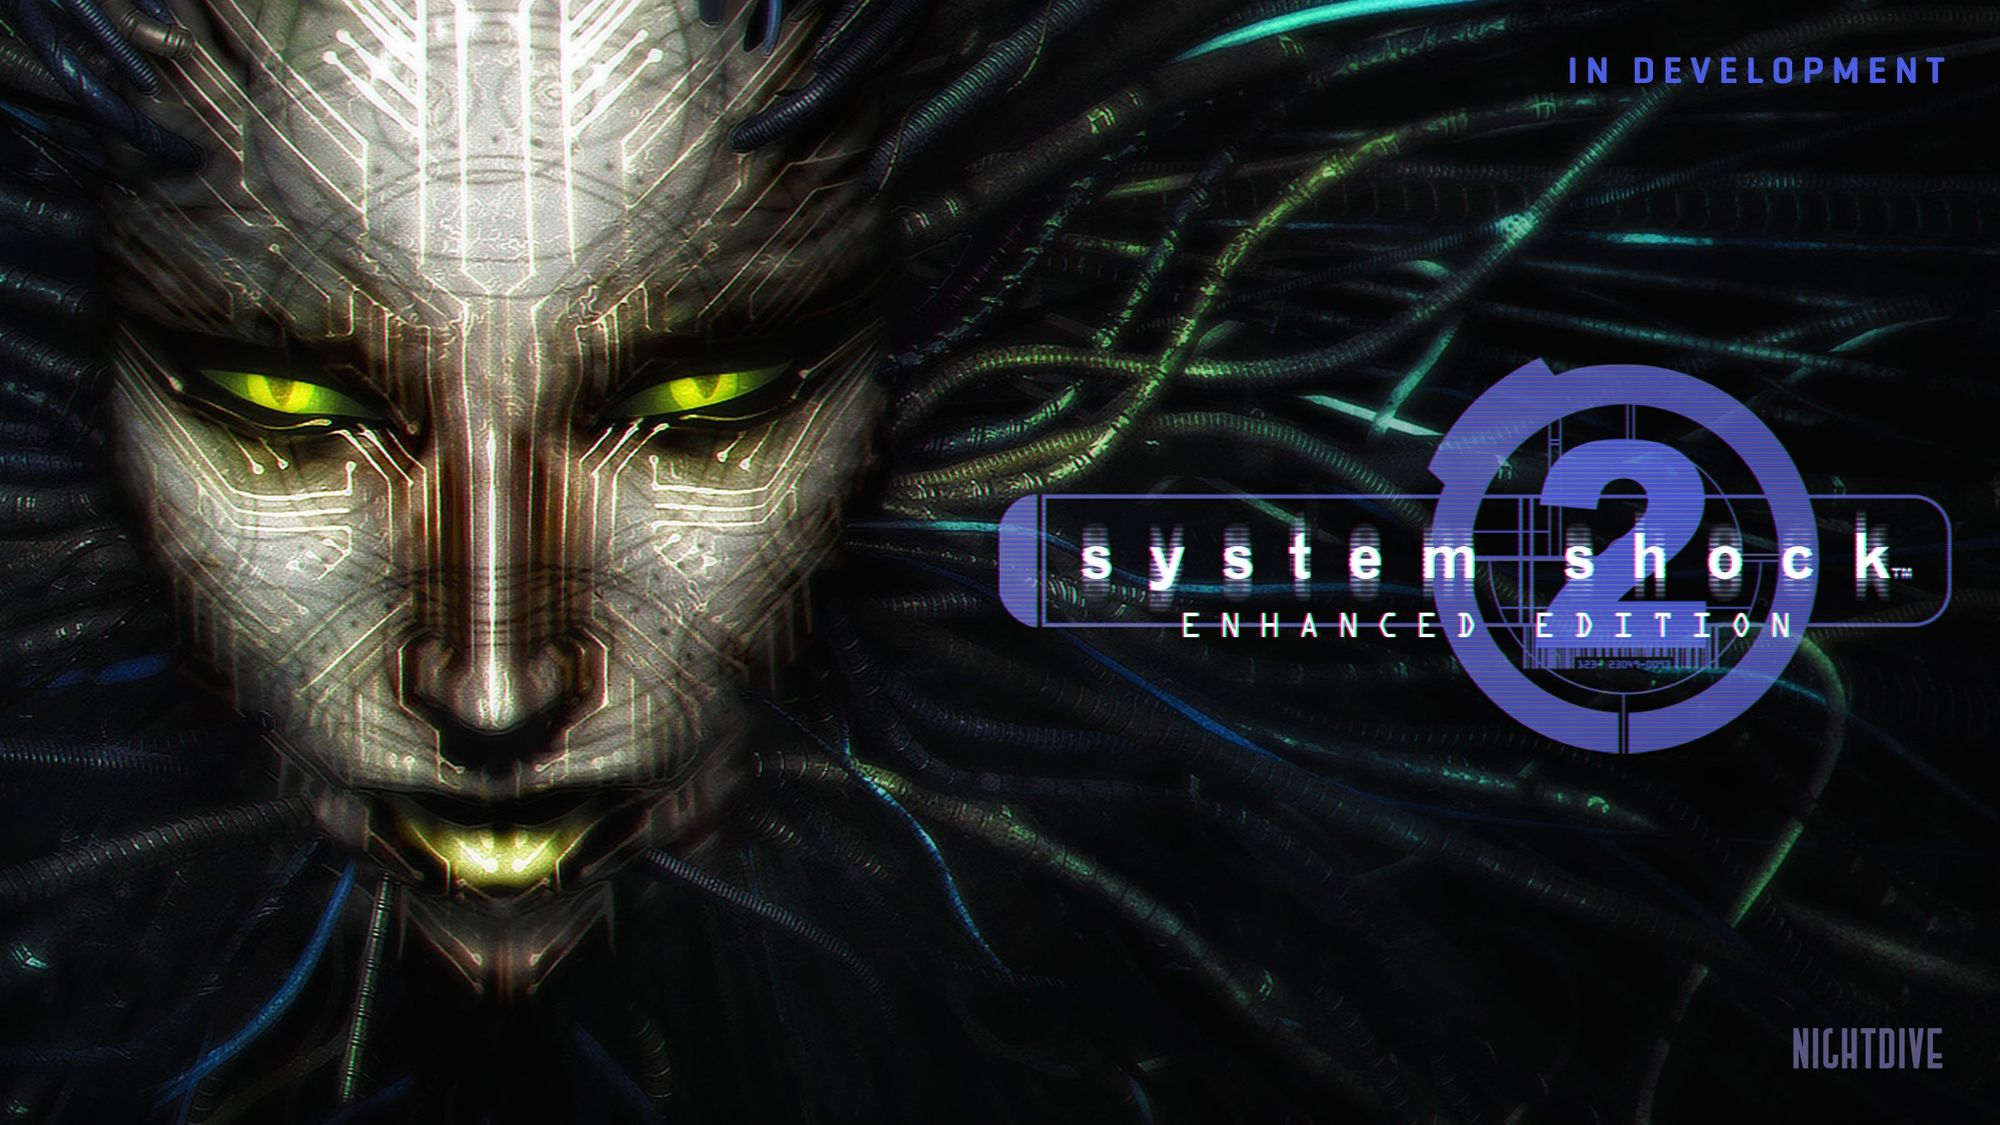 System Shock VR? It looks like System Shock 2 Enhanced Edition will get VR support